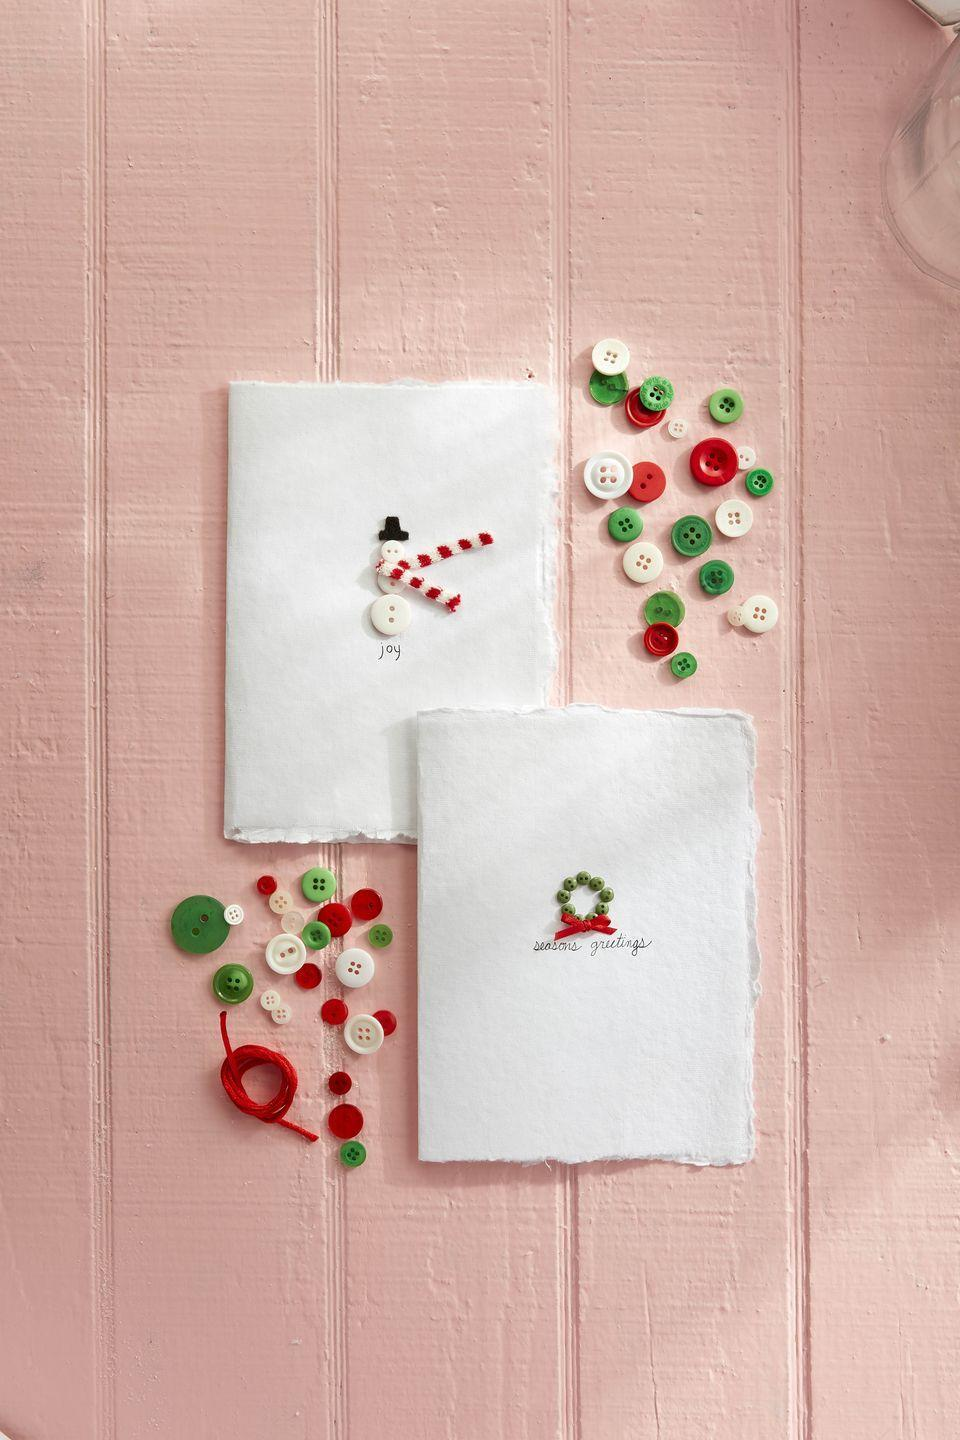 """<p>Transform the humble button into a festive greeting by using them to decorate the outside of an easy-peasy DIY holiday card. </p><p><strong>To make:</strong> Glue small buttons in the shape of a wreath or snowman to the outside of a plain card. Loop a <a href=""""https://www.amazon.com/Factory-Direct-Craft-Miniature-Christmas/dp/B07WSXY2QY/ref=sr_1_13"""" rel=""""nofollow noopener"""" target=""""_blank"""" data-ylk=""""slk:mini scarf,"""" class=""""link rapid-noclick-resp"""">mini scarf,</a> trimmed if necessary, under the button body and head of the snowman before attaching buttons; glue down ends of scarf to the card. Attach a hat, made from black felt with glue. Glue a tiny bow made from thin red ribbon to the wreath. Write a seasonal saying, if desired.</p><p><a class=""""link rapid-noclick-resp"""" href=""""https://www.amazon.com/Blumenthal-Lansing-2-Ounce-Buttons-Christmas/dp/B002Y2O0JY/ref=sr_1_6?tag=syn-yahoo-20&ascsubtag=%5Bartid%7C10050.g.3872%5Bsrc%7Cyahoo-us"""" rel=""""nofollow noopener"""" target=""""_blank"""" data-ylk=""""slk:SHOP BUTTONS"""">SHOP BUTTONS</a></p>"""